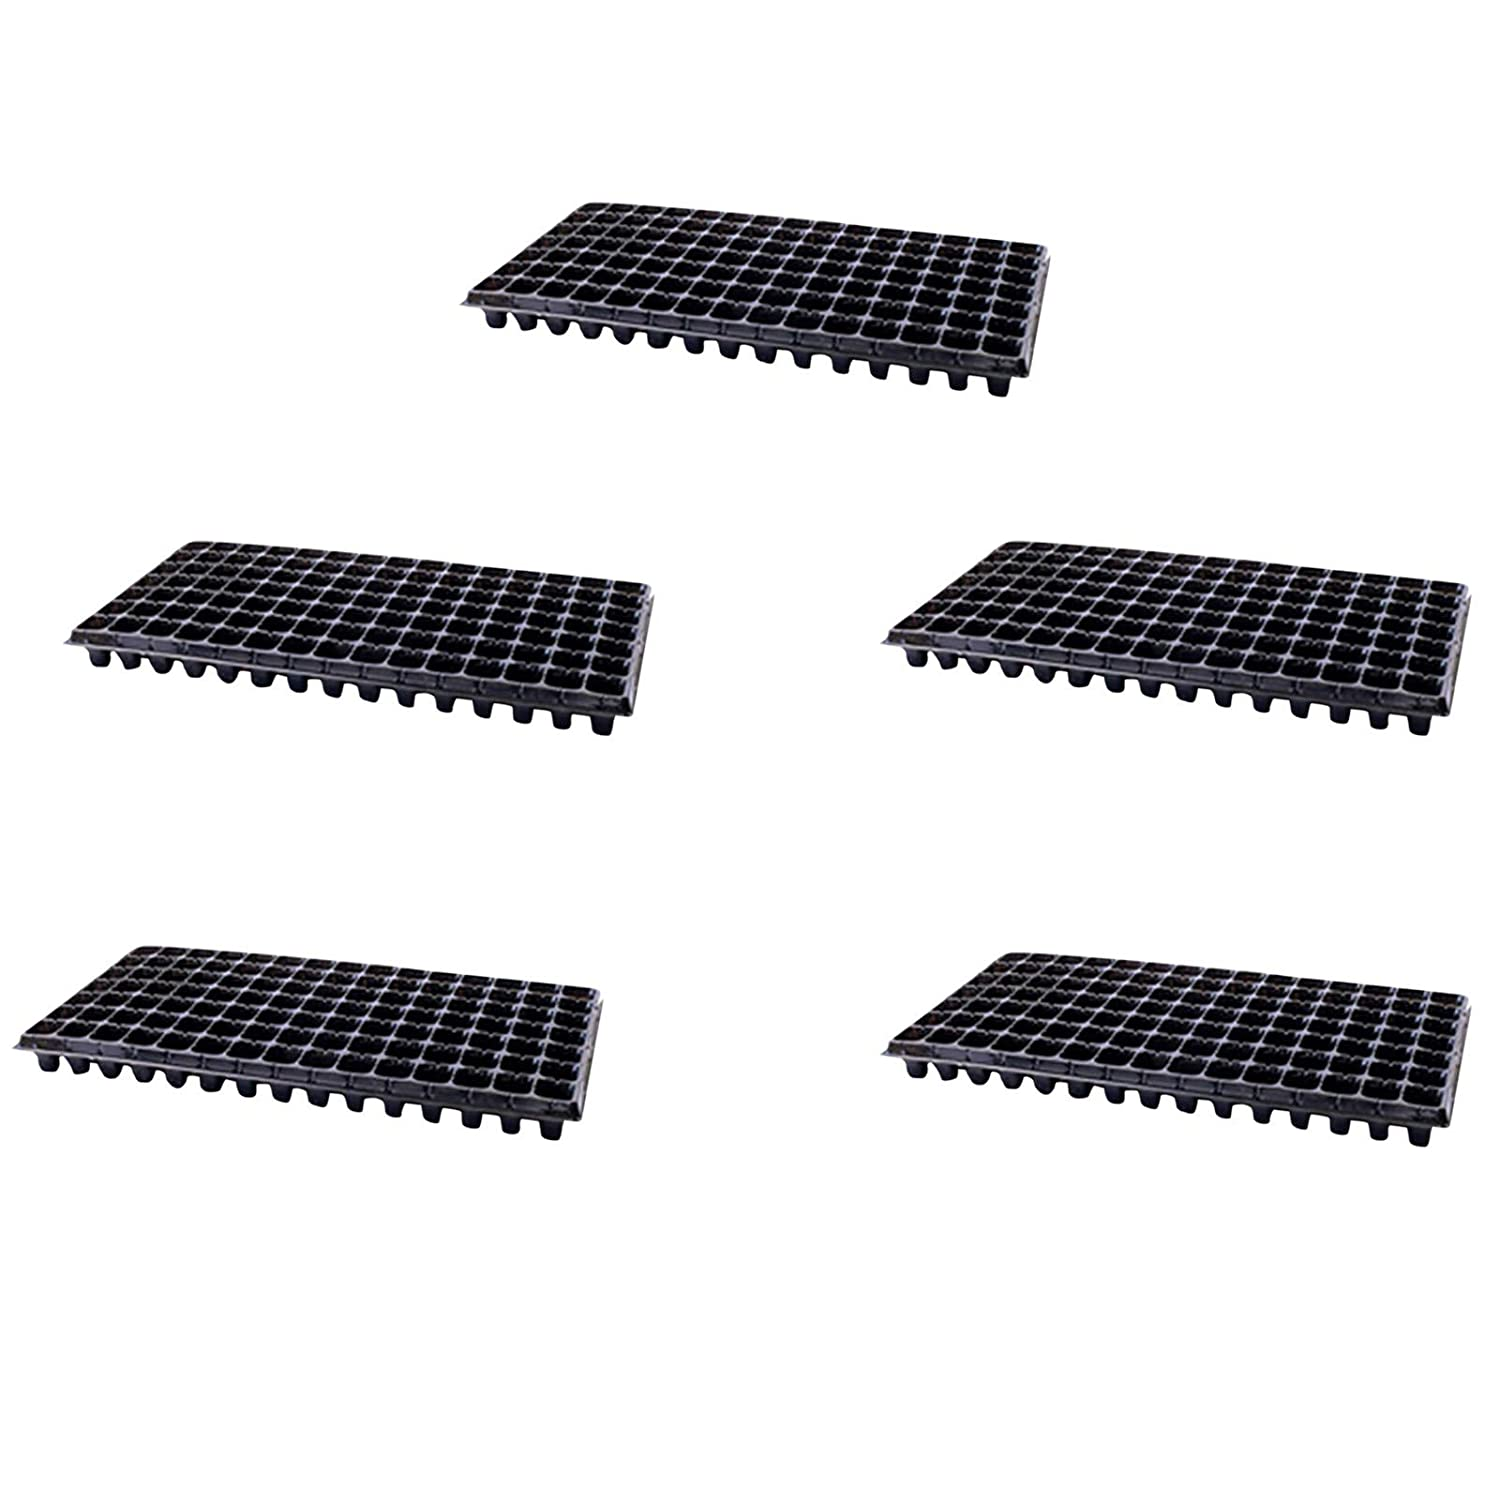 Seed Starter Trays 105 overseas Cell Max 53% OFF Ge Seedling Gardening Plastic